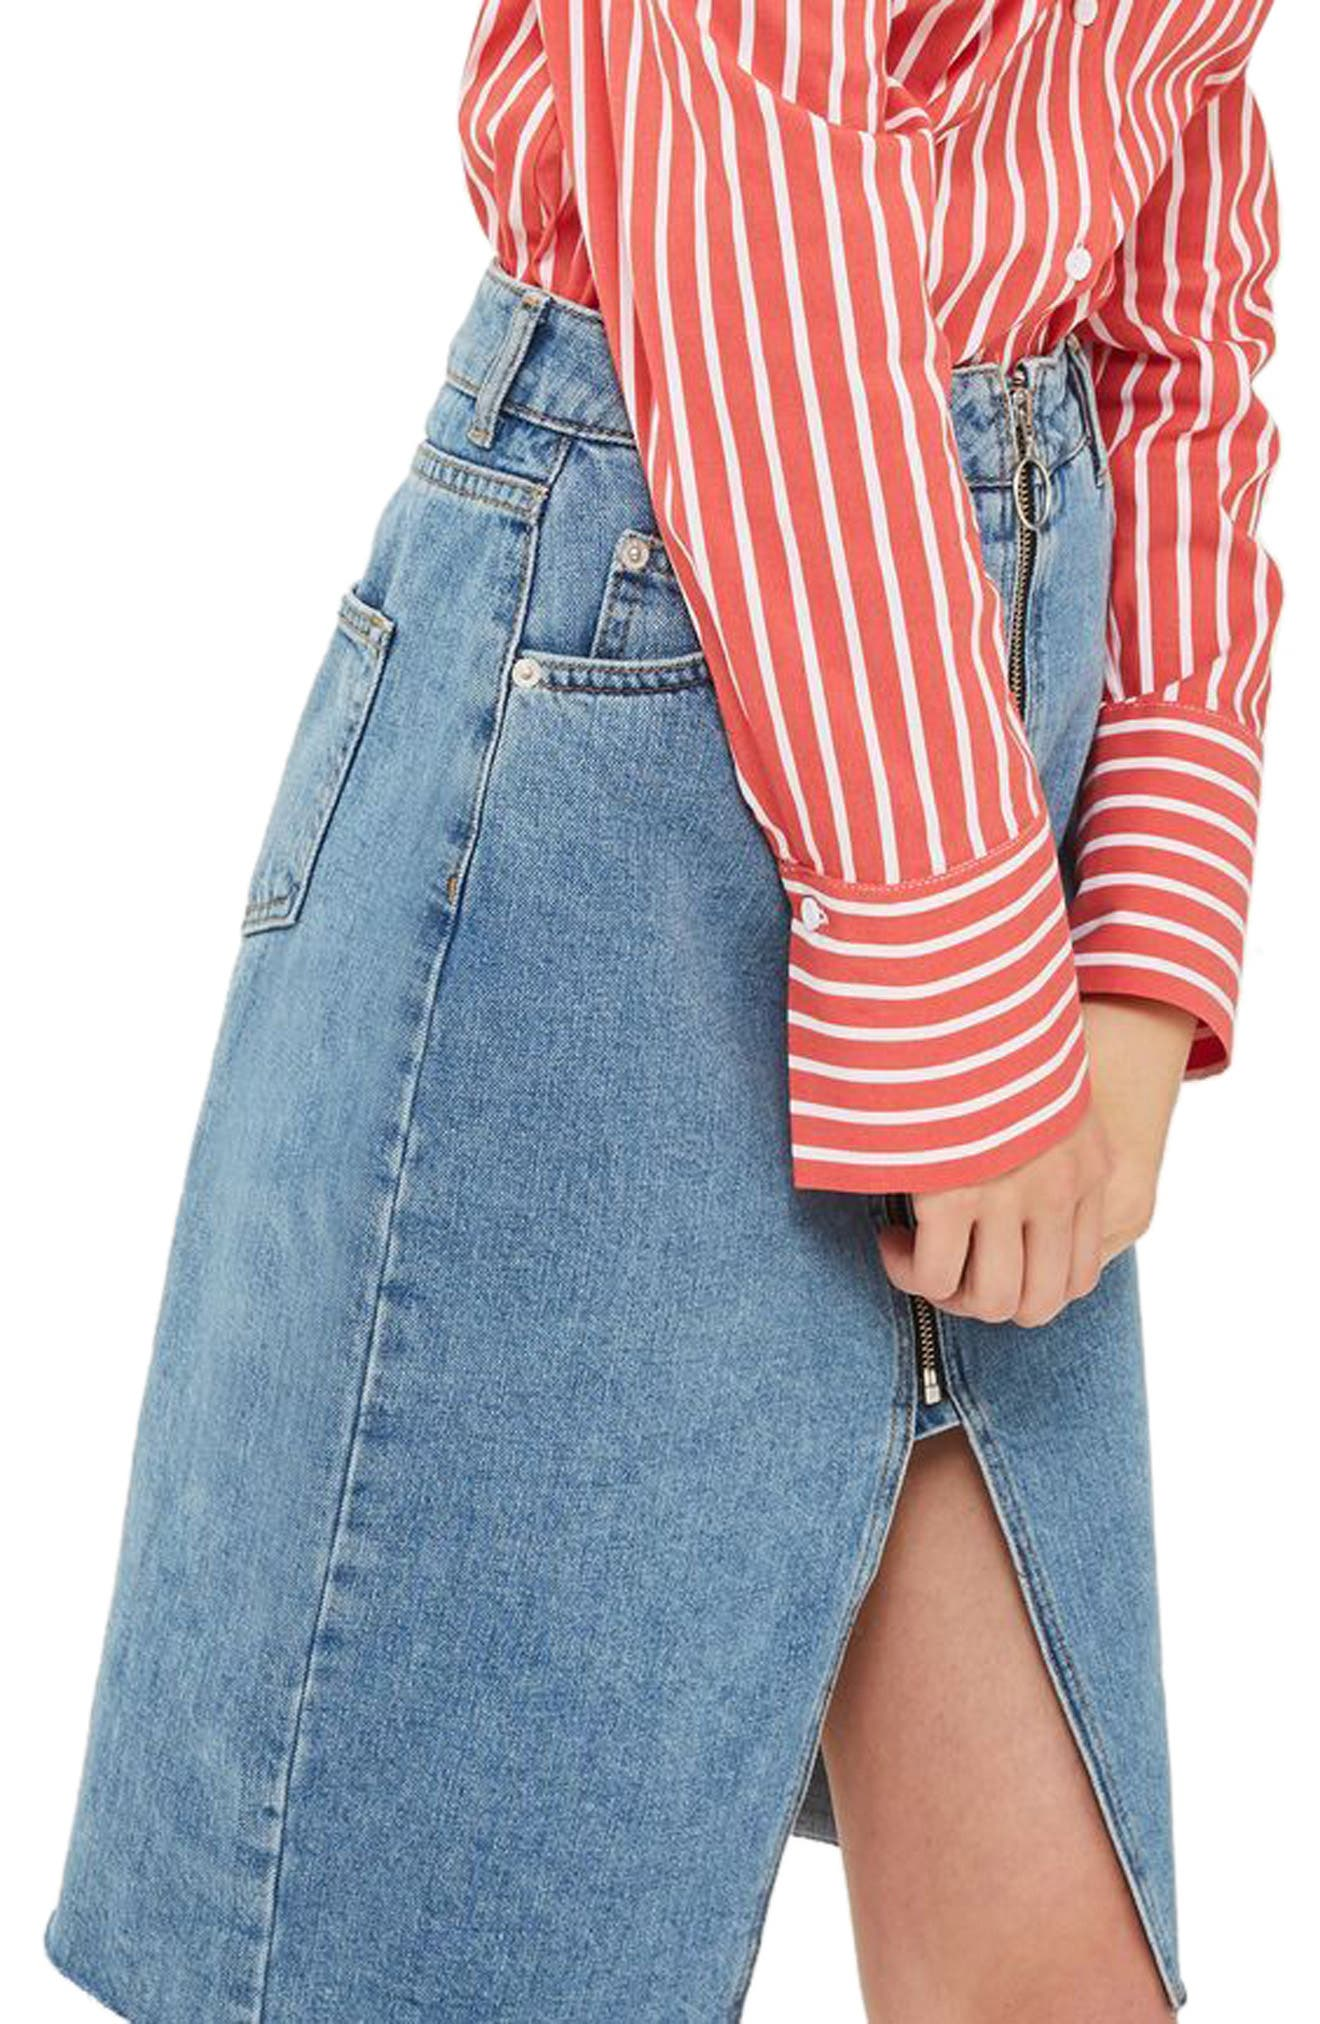 Alternate Image 3  - Topshop Zip Denim Skirt